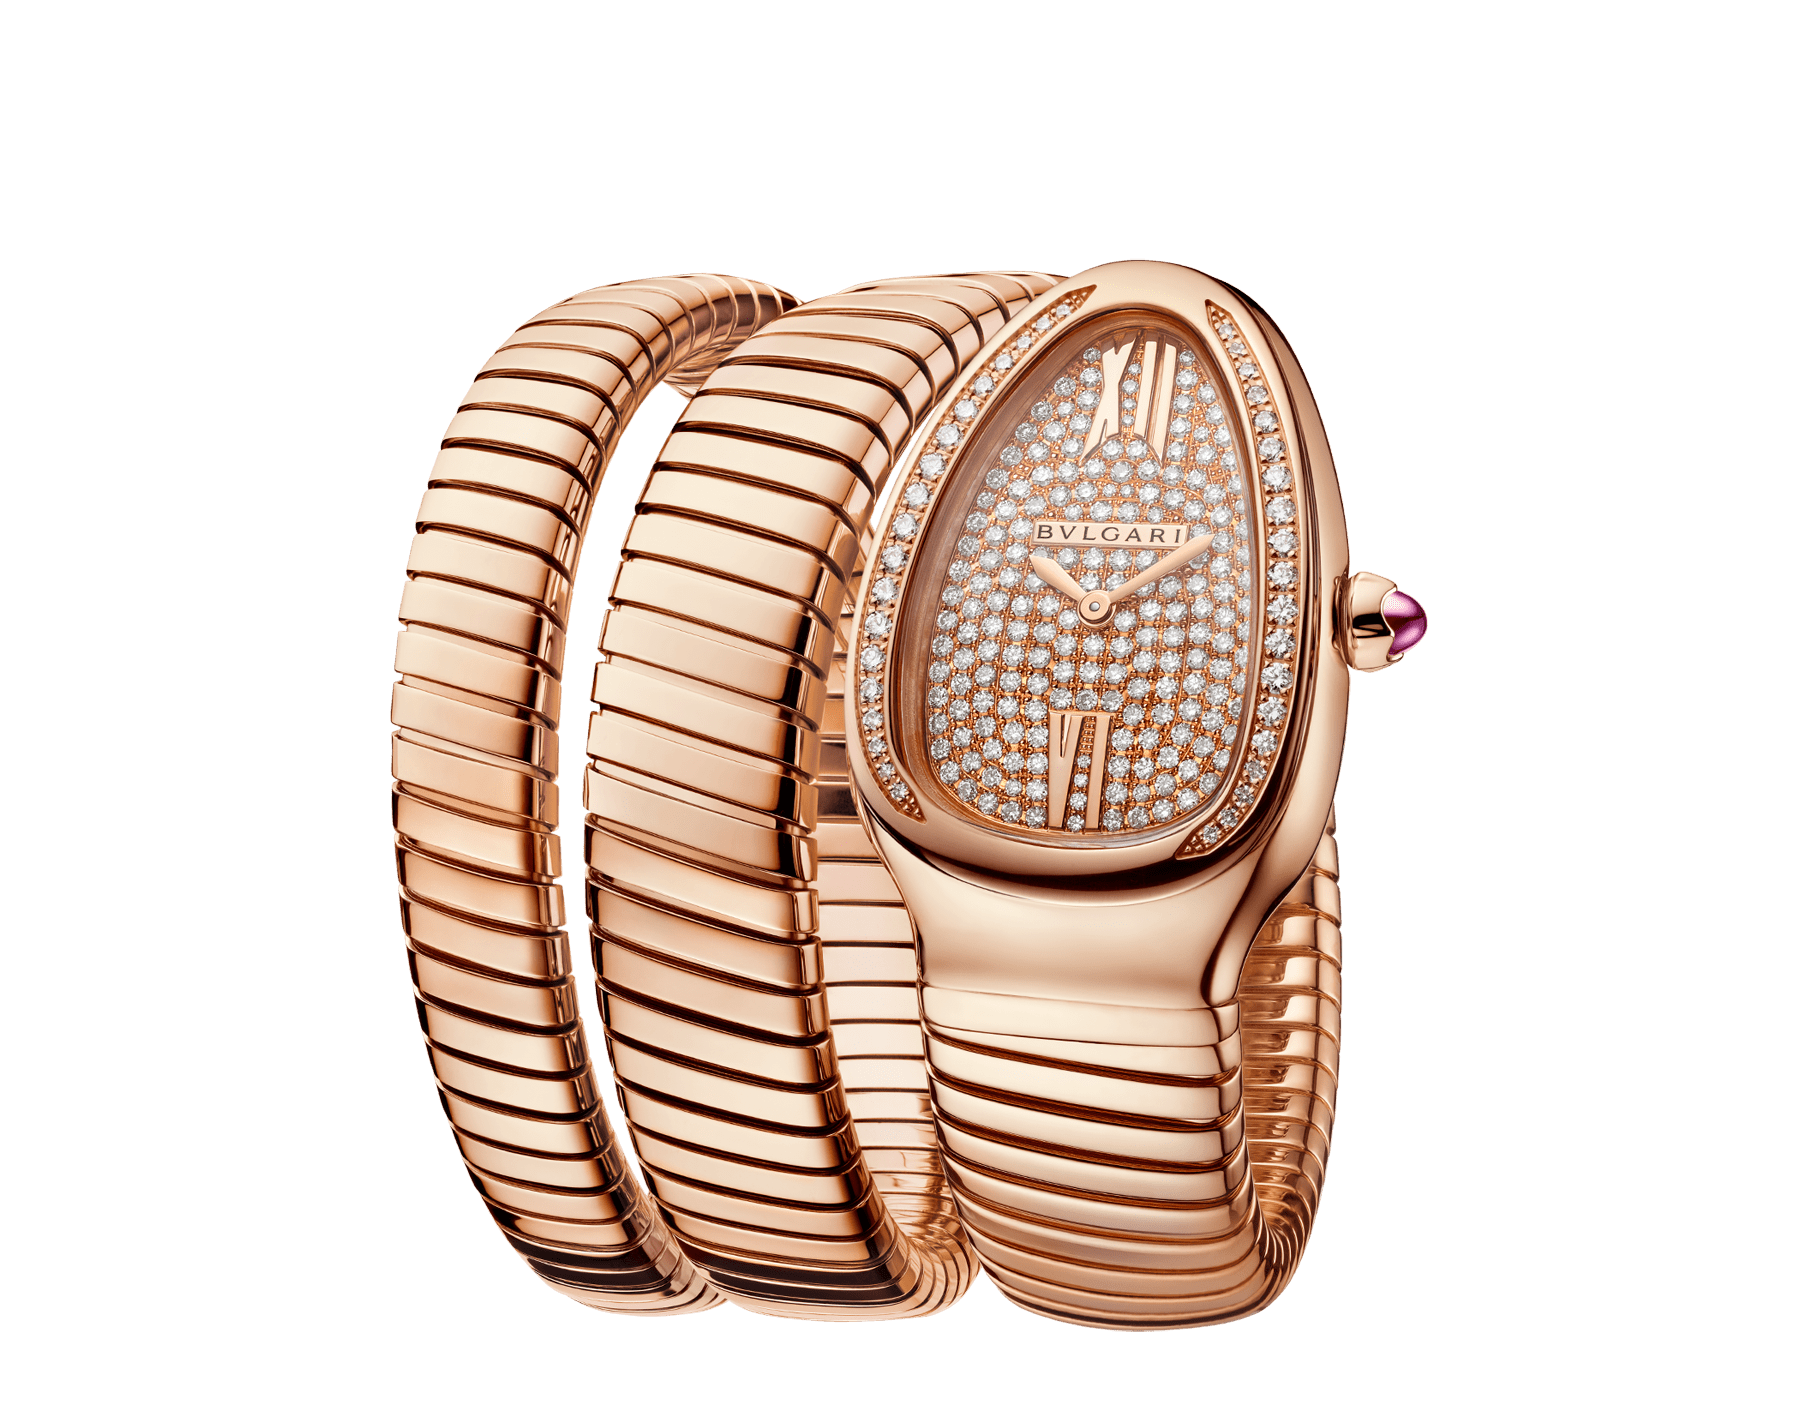 Serpenti Tubogas double spiral watch with 18 kt rose gold case set with brilliant cut diamonds, 18 kt rose gold dial set with full pavé brilliant cut diamonds and 18 kt rose gold bracelet. 101956 image 2